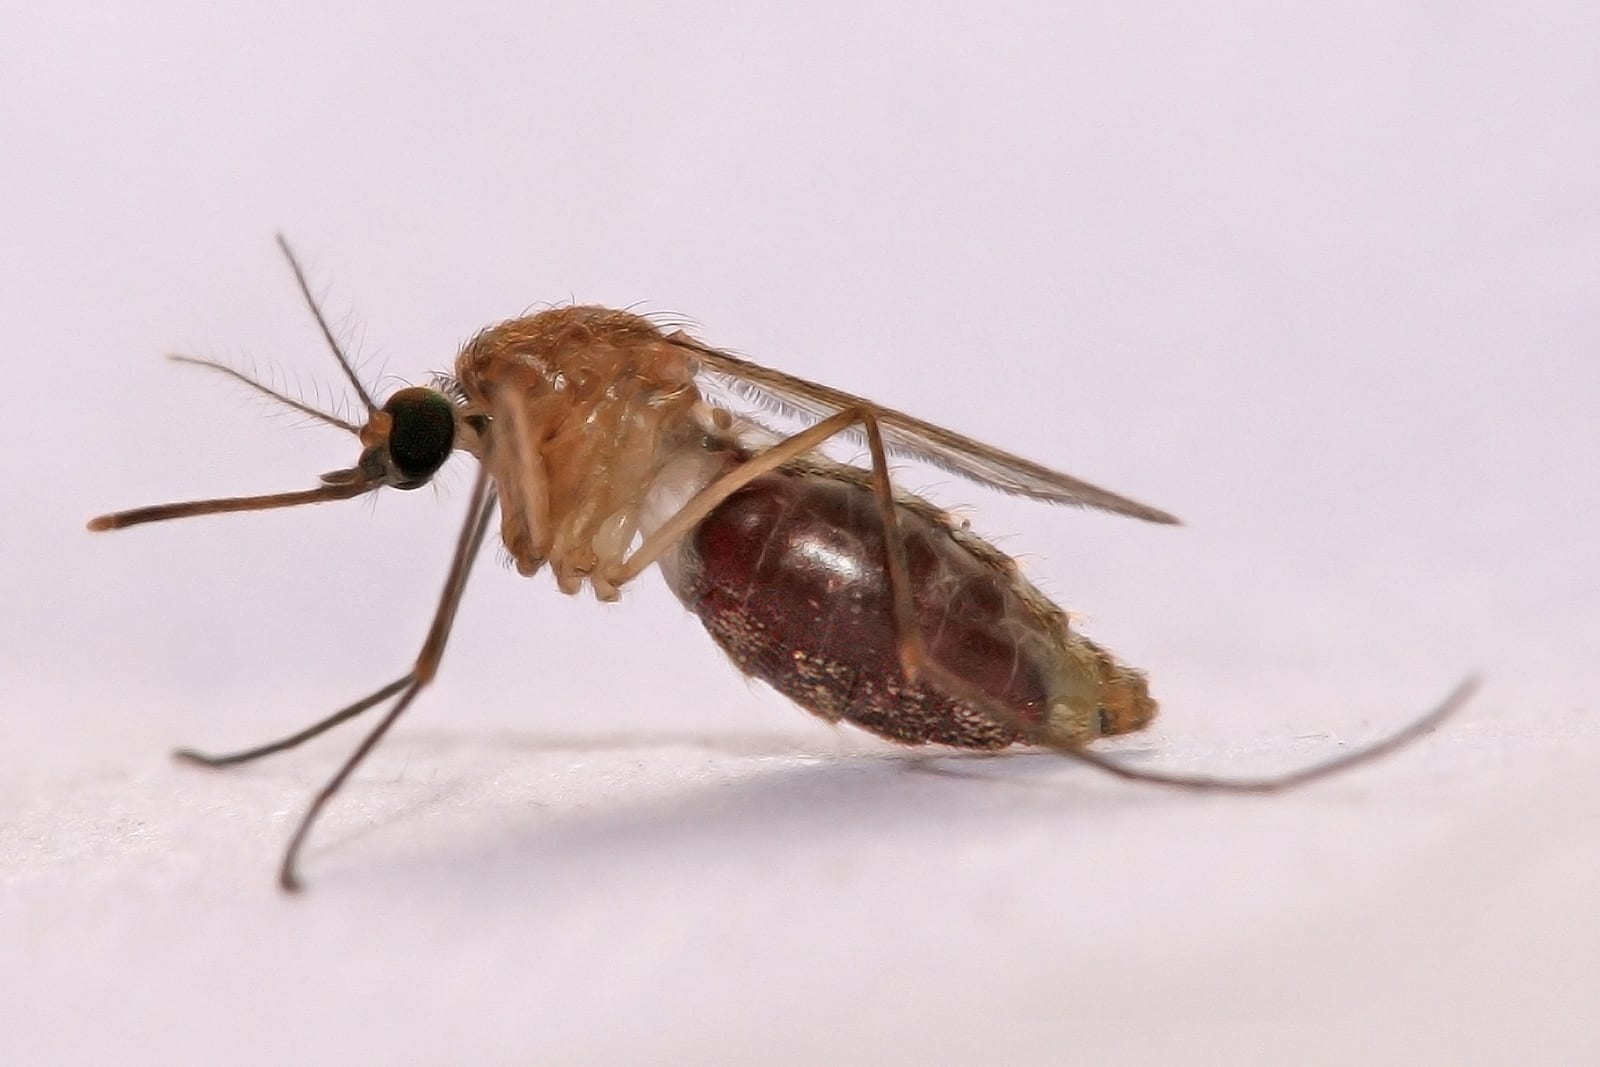 An Anopheles gambiae mosquito has a blood meal as it feeds on a human host.